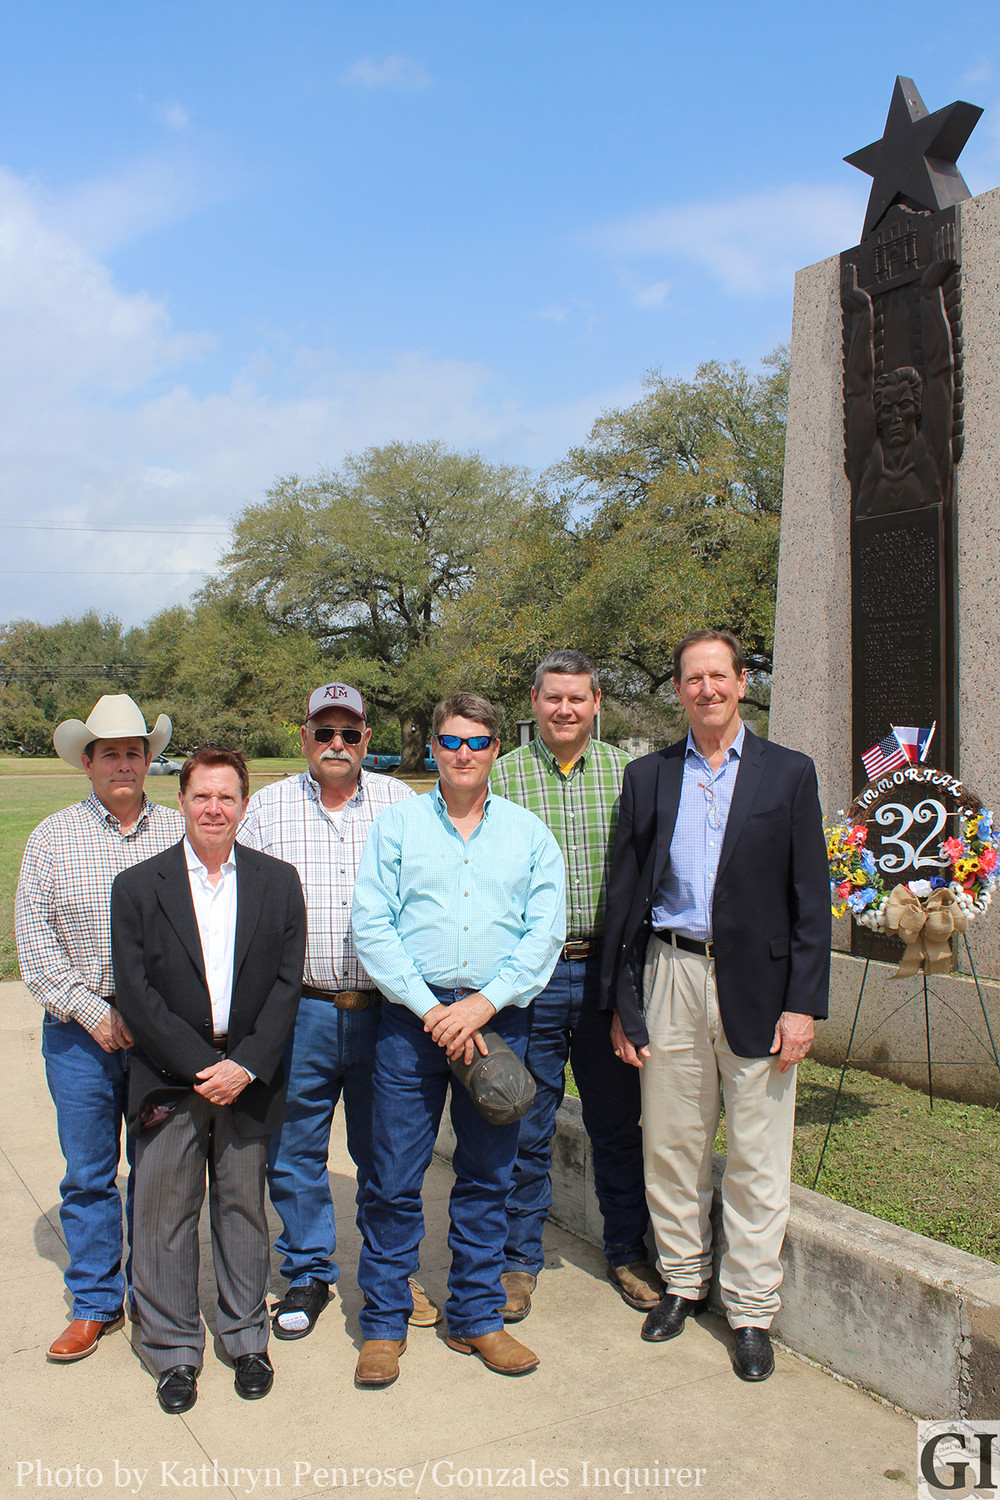 Members of Sons of the Republic of Texas Chapter 29 laid a wreath at the foot of the Immortal 32 monument at Gonzales Memorial Museum on Tuesday, Feb. 27, commemorating the departure of the Immortal 32 from Gonzales. Back Row (left to right): John Meador, Kenneth Fink and Brian Sample. Front row (left to right): Richard Croizer, Kirk Lubbock and Chapter President David Bird.